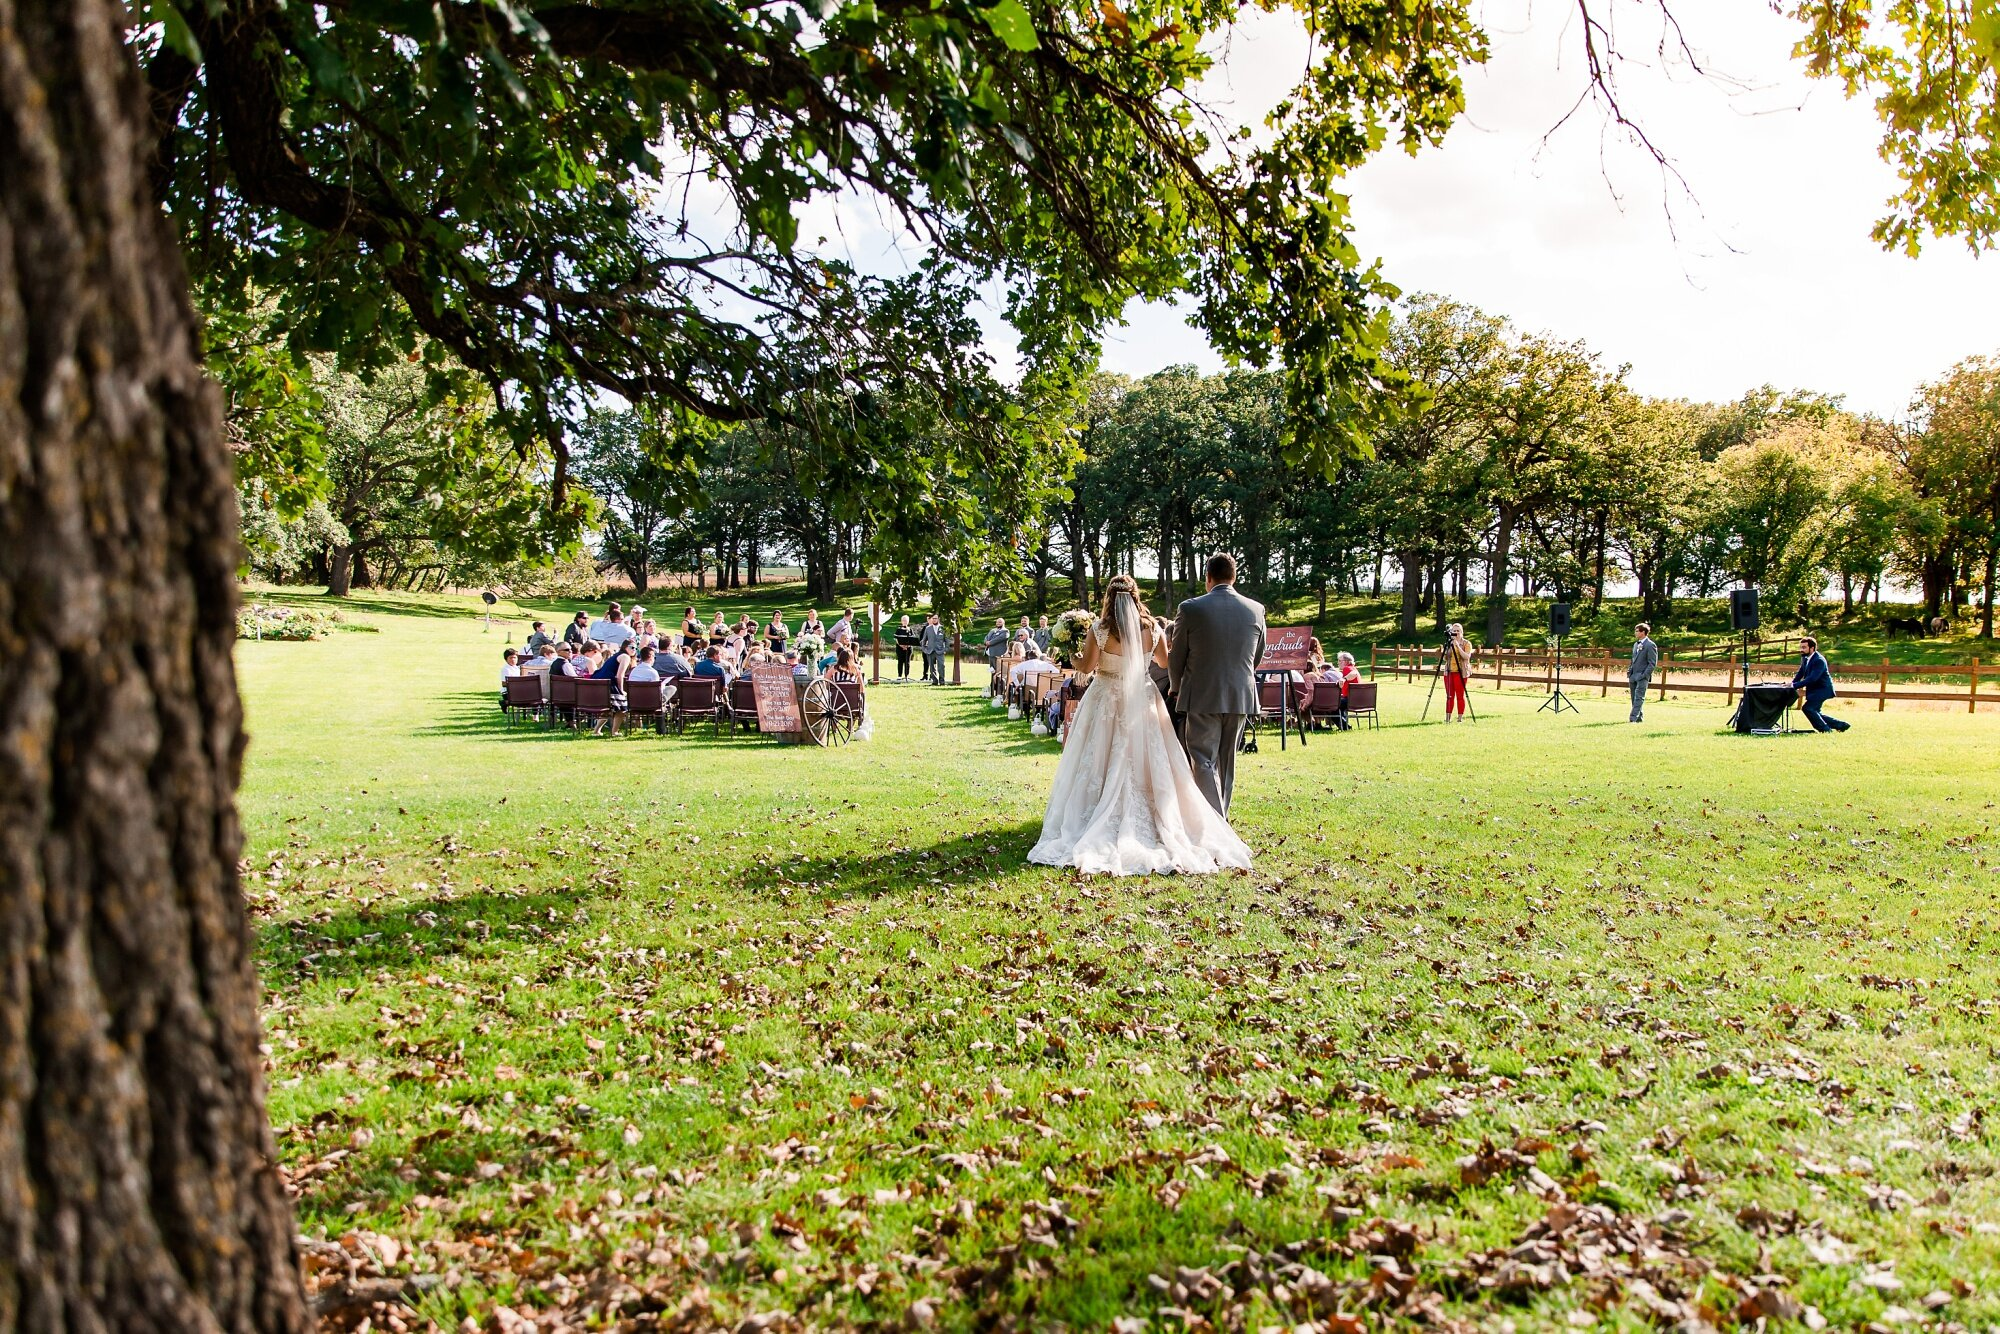 Amber Langerud Photography_Lake Park Minnesota, Outdoor Barn Wedding With Horses_6982.jpg